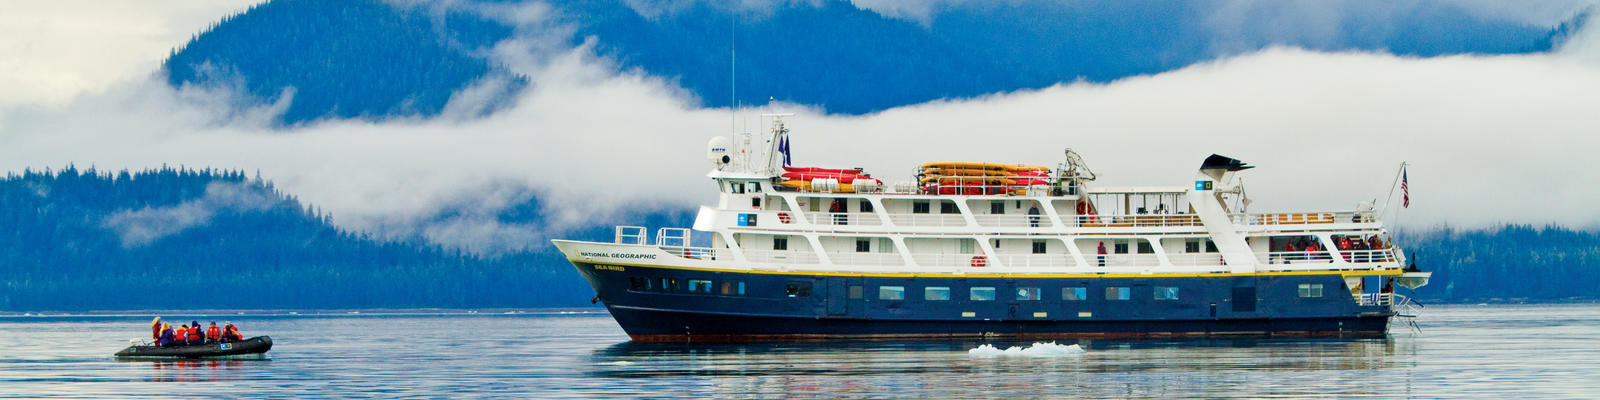 5 Things to Know About Family Expedition Cruising (Photo: Lindblad Expeditions)